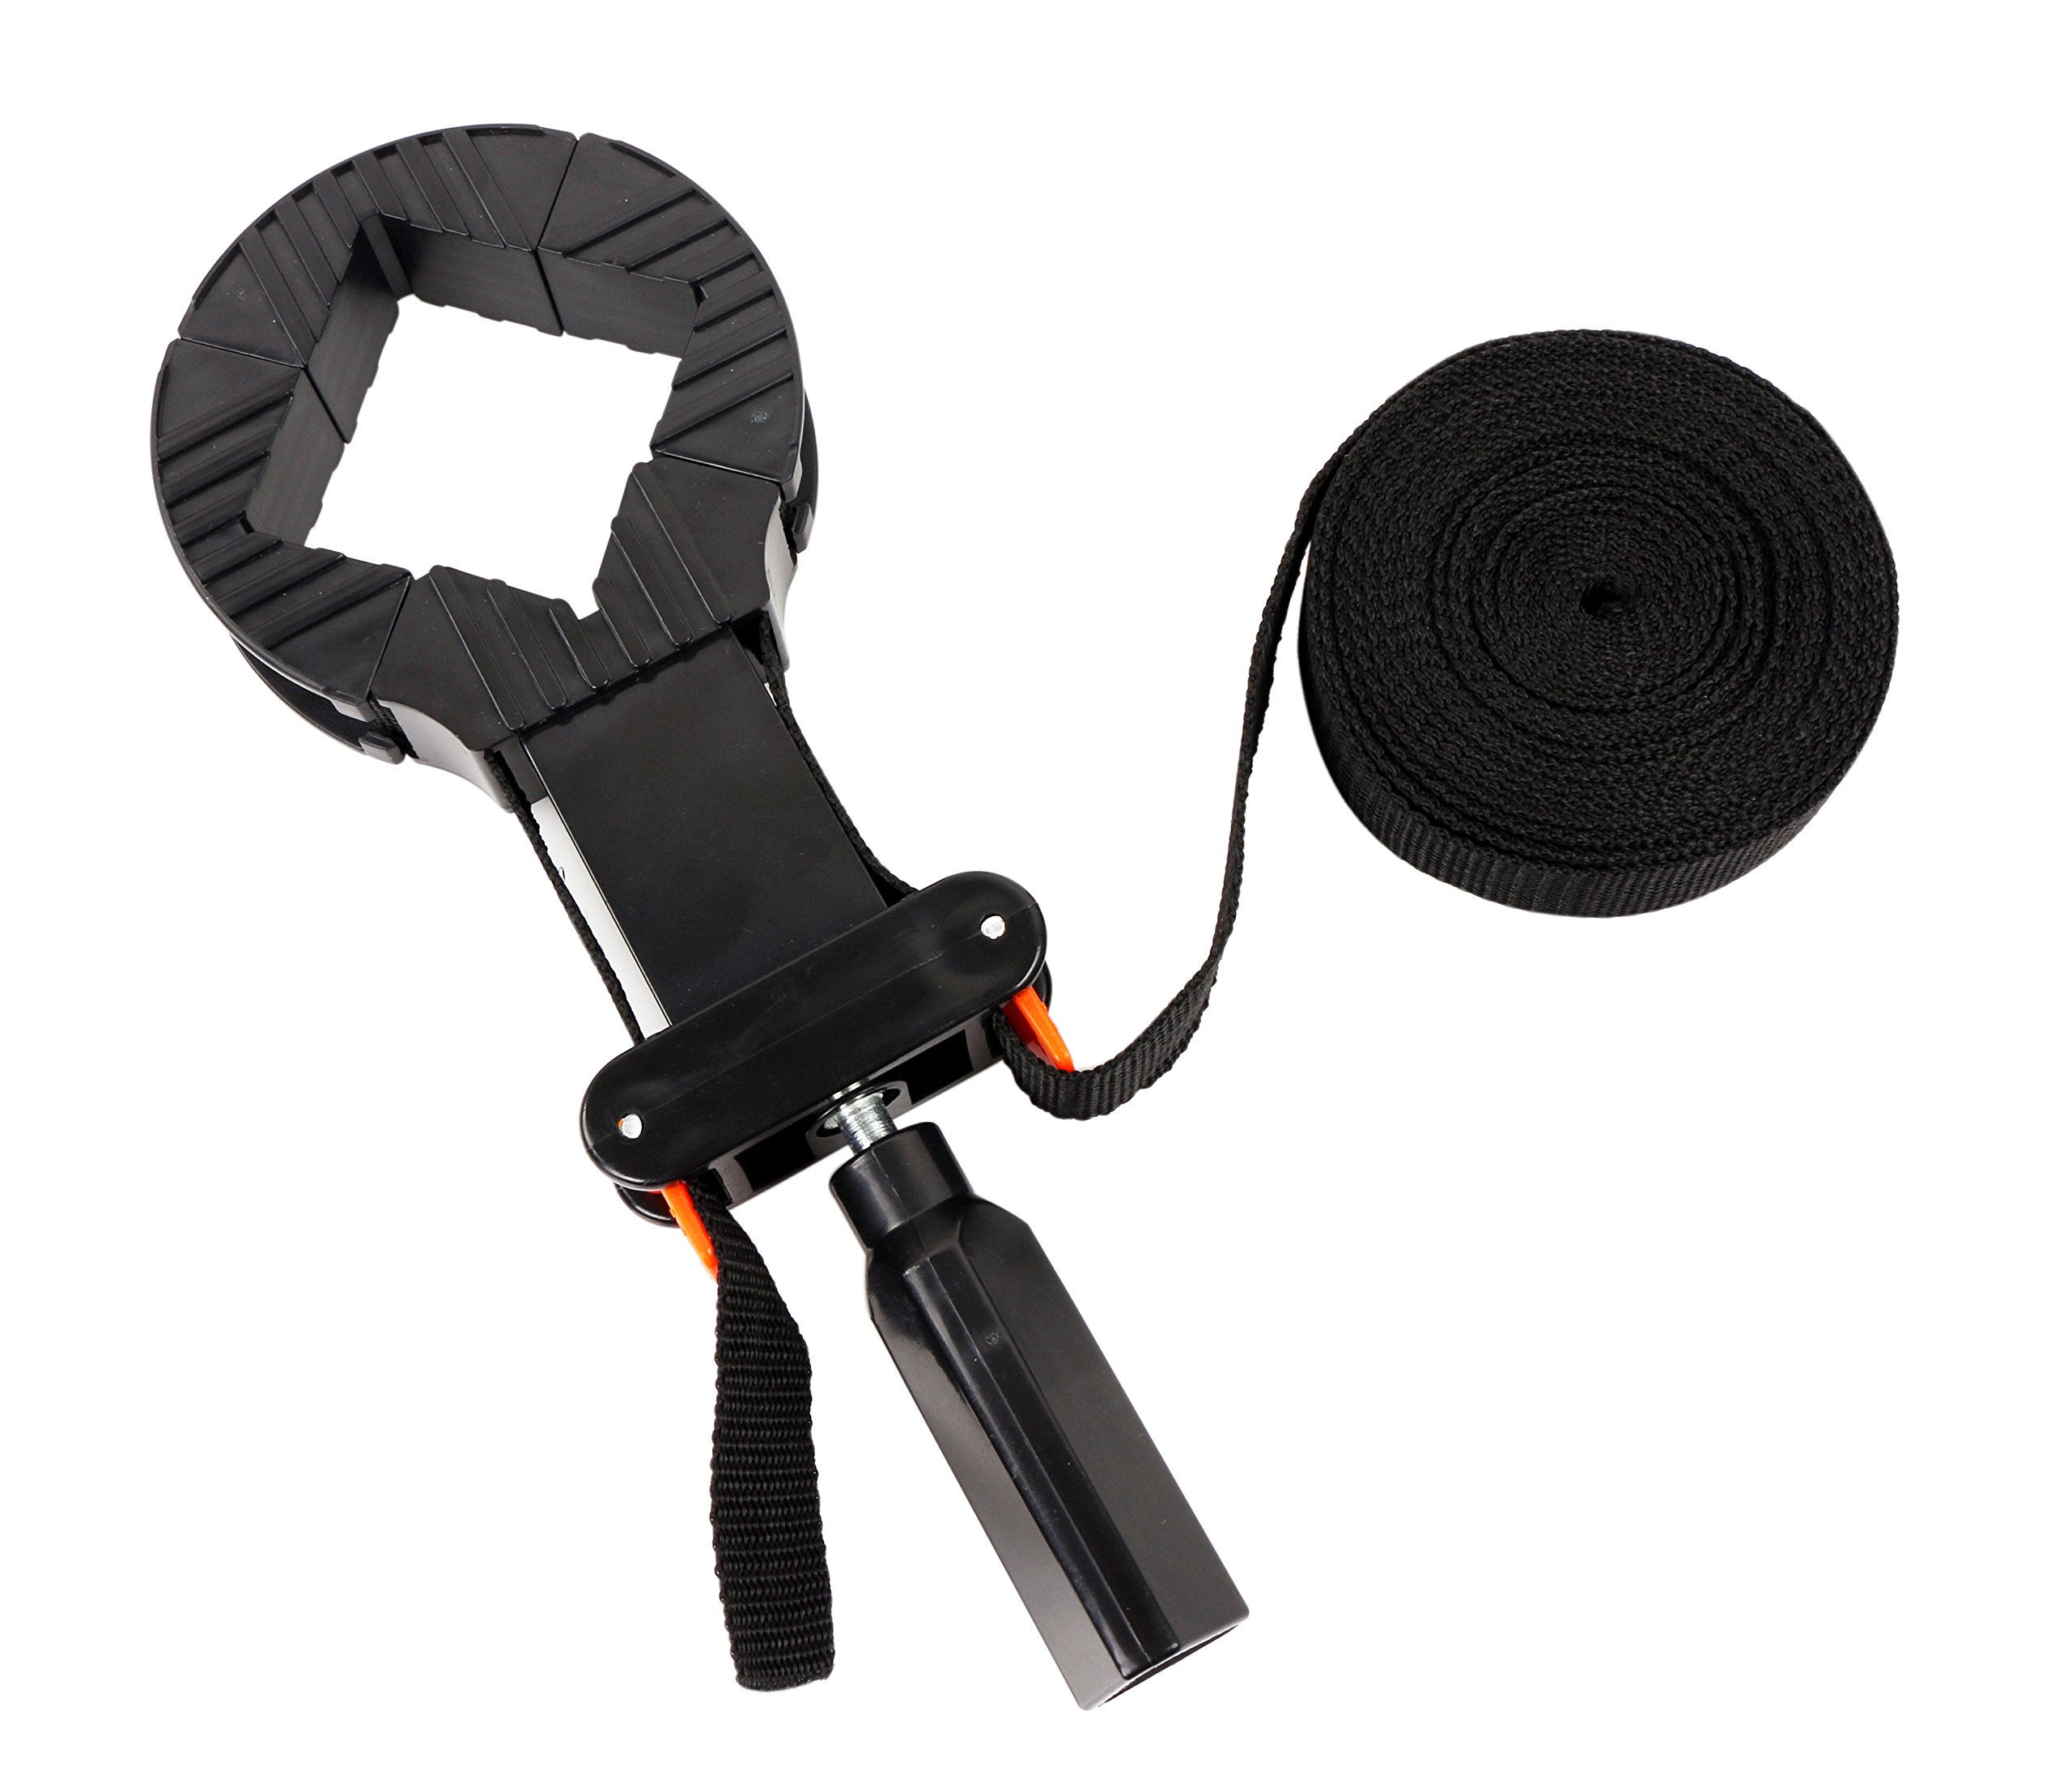 20 Feet Long Multifunctional Adjustable Binding Woodworking Tool Belt Band Strap Clamp With 90 Degree Angle Clip Adjustable Perfect for Use With Box, Picture Frame, Barrel